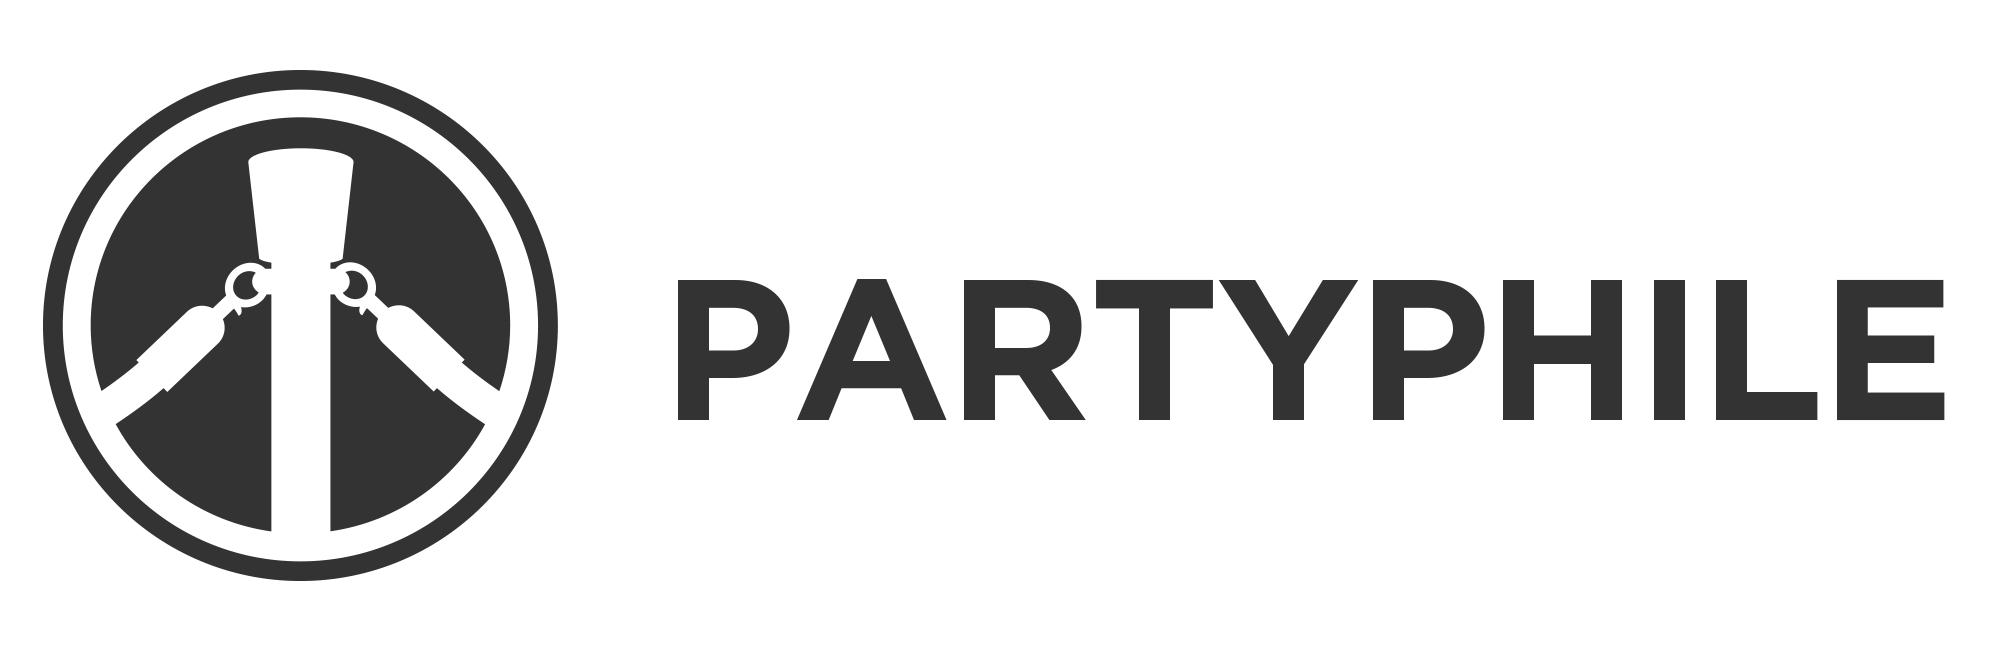 Partyphile